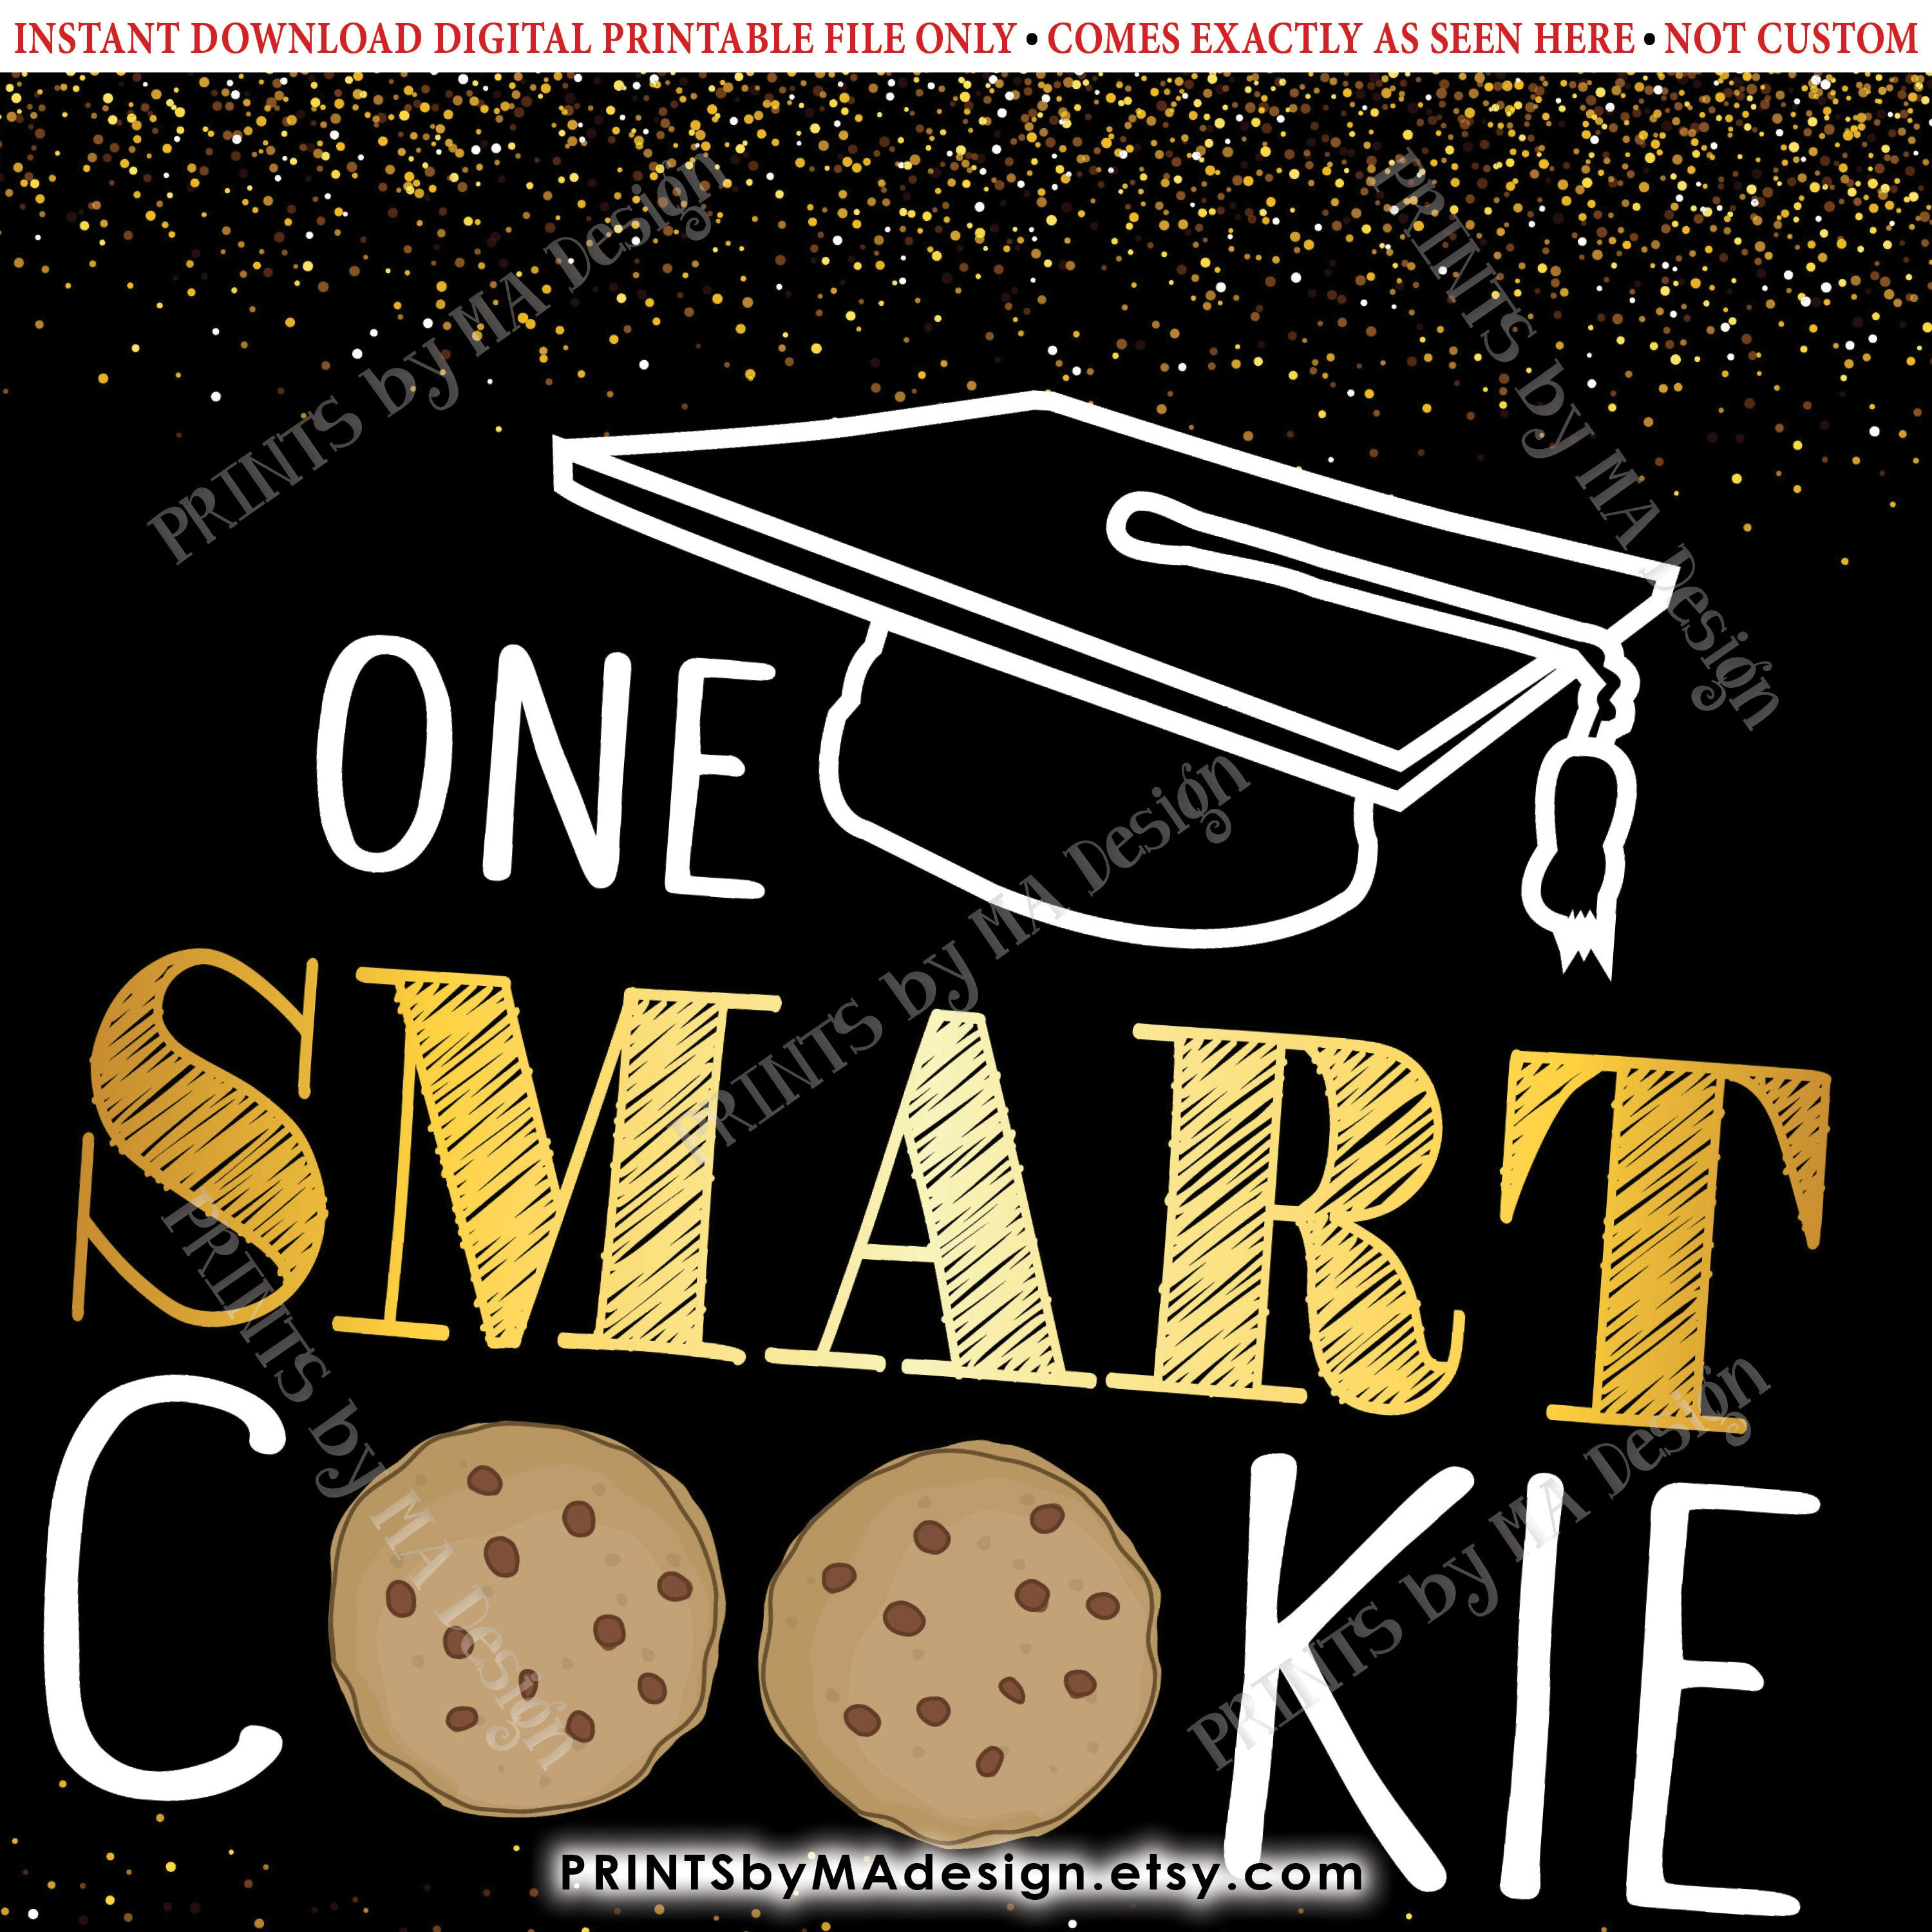 photograph about Smart Cookie Printable known as Just one Sensible Cookie Indication, Commencement Get together Decorations